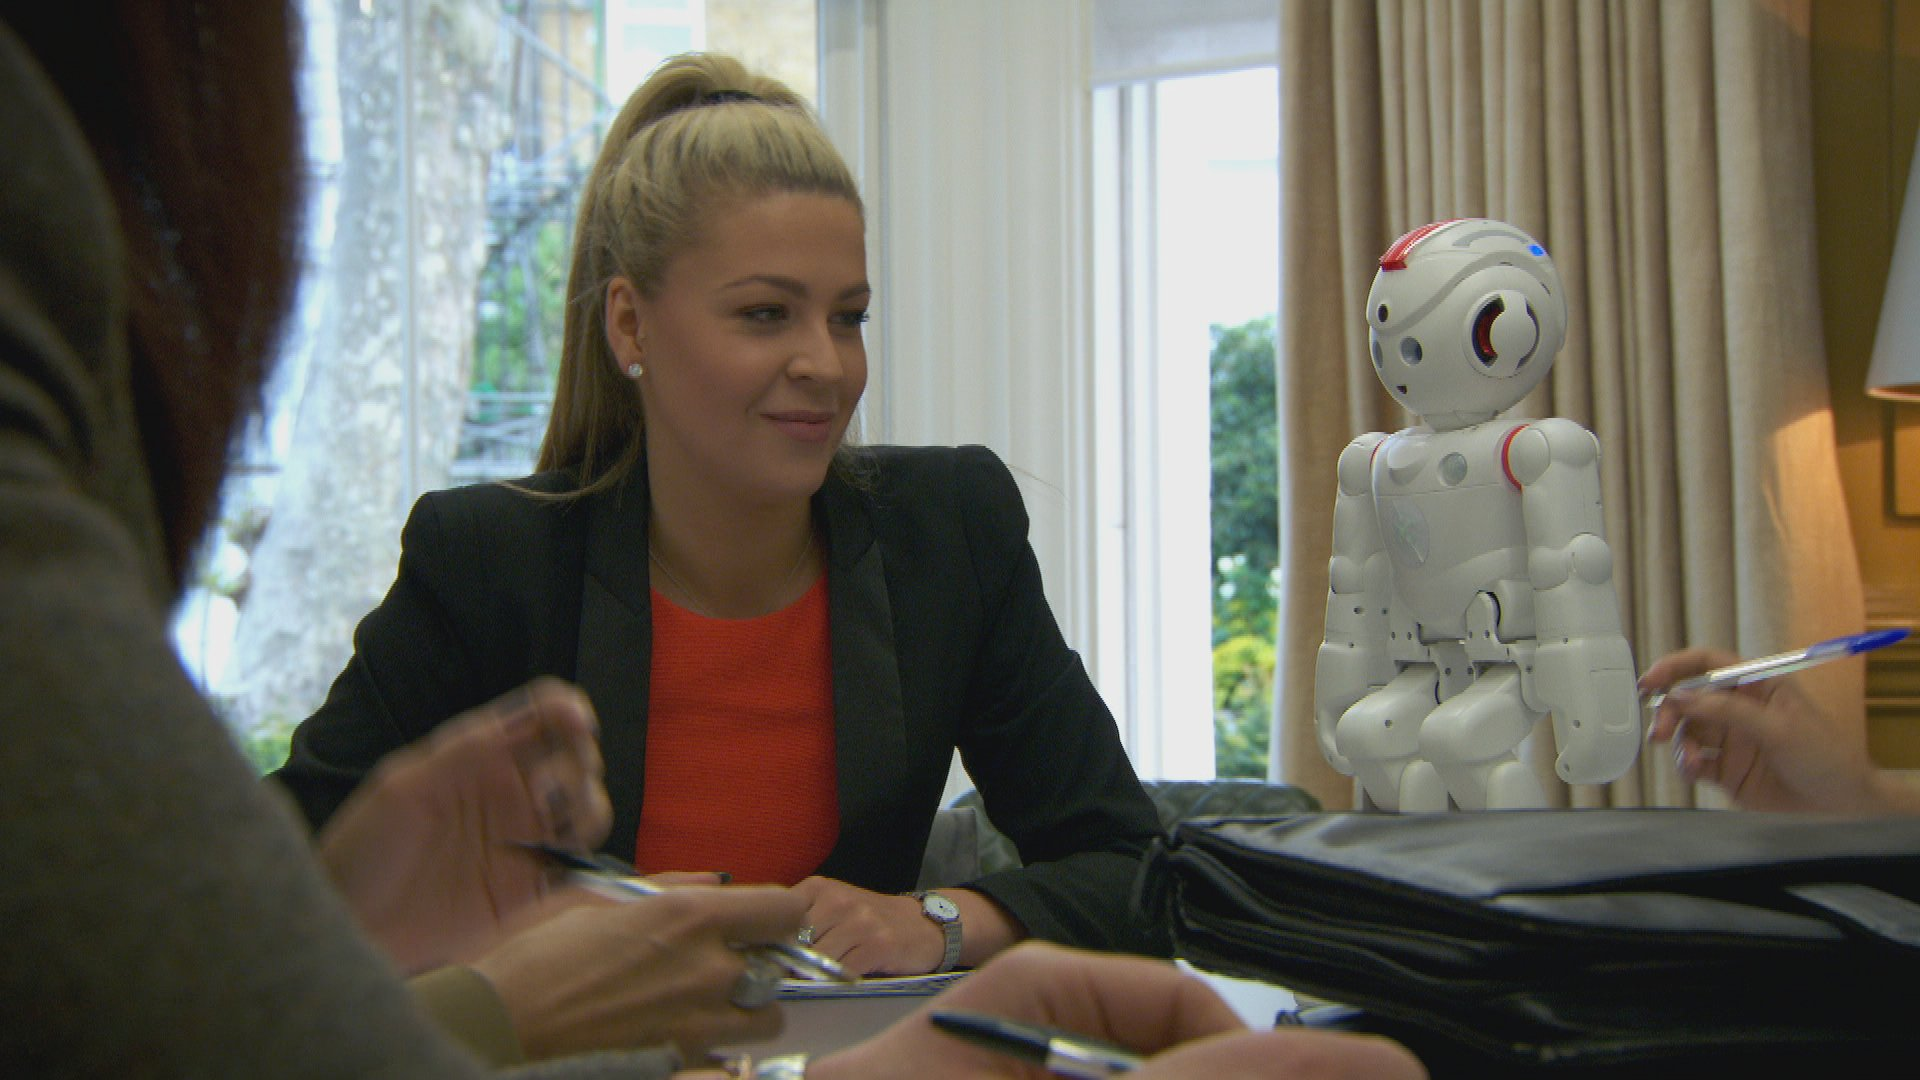 Jade gets more sense out of the robot than she does her teammates, on The Apprentice tomorrow night at 9pm BBC1. https://t.co/a20KEdrJJH